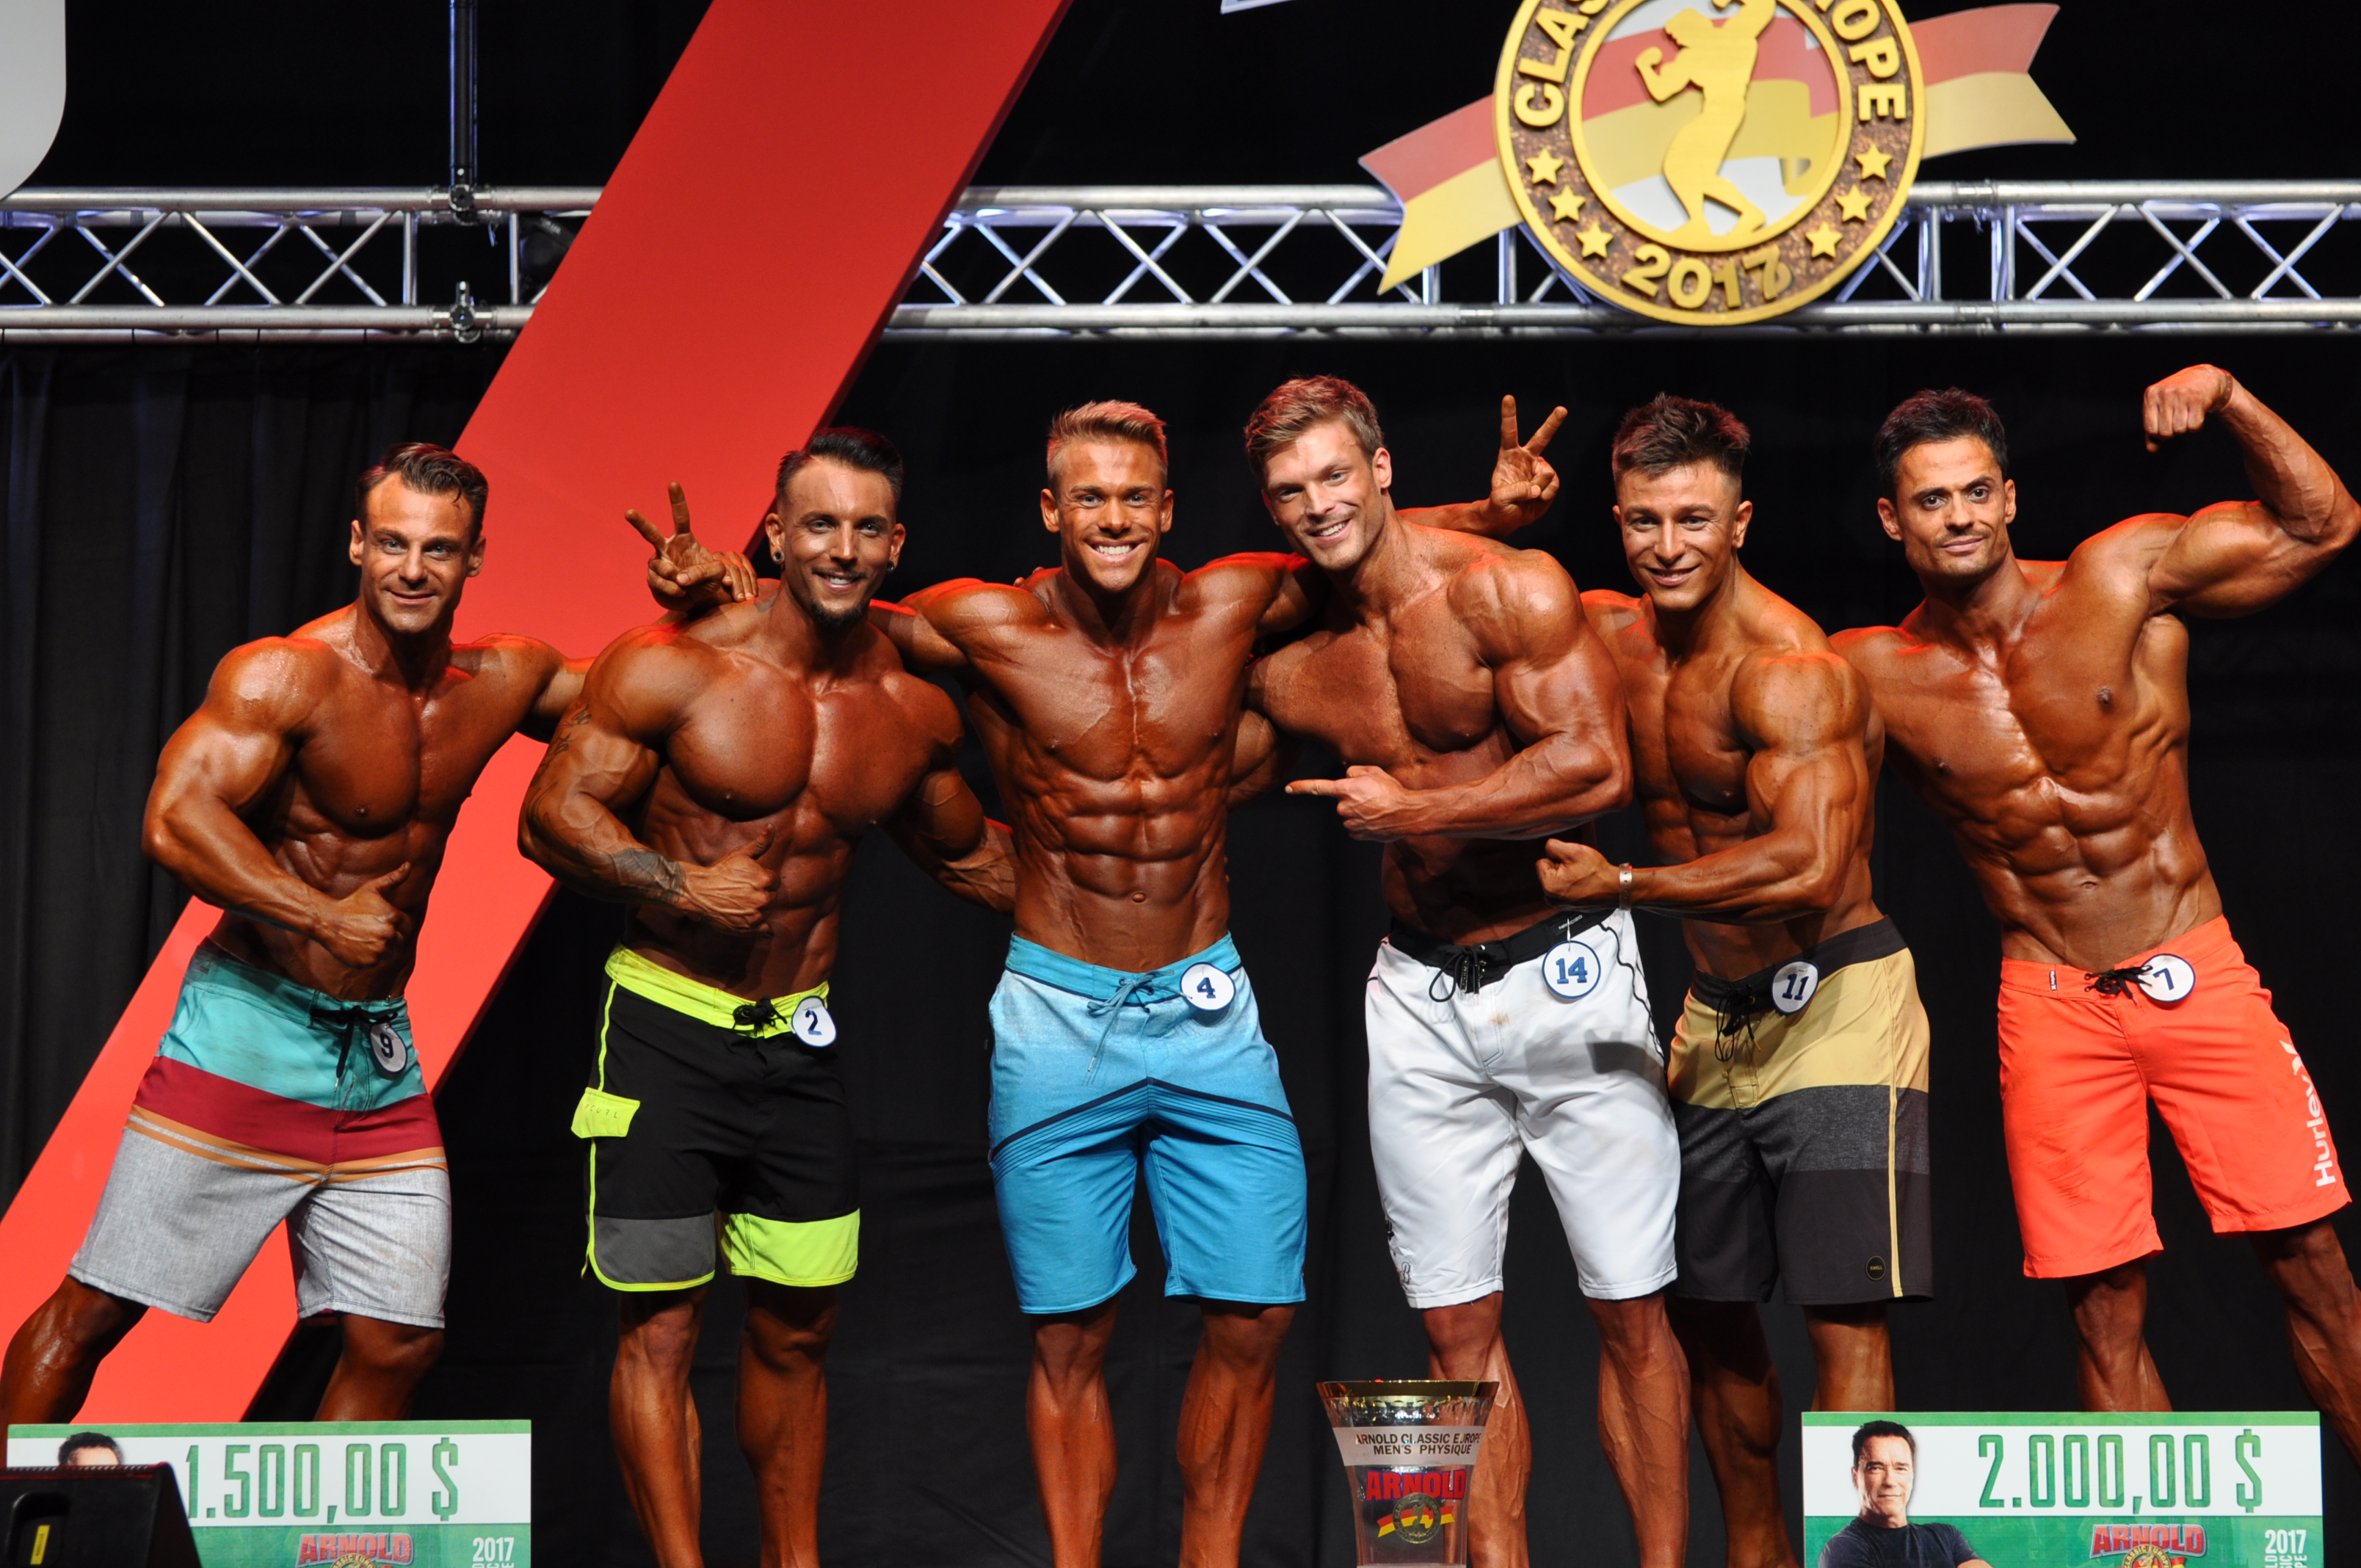 Men's physique top 6